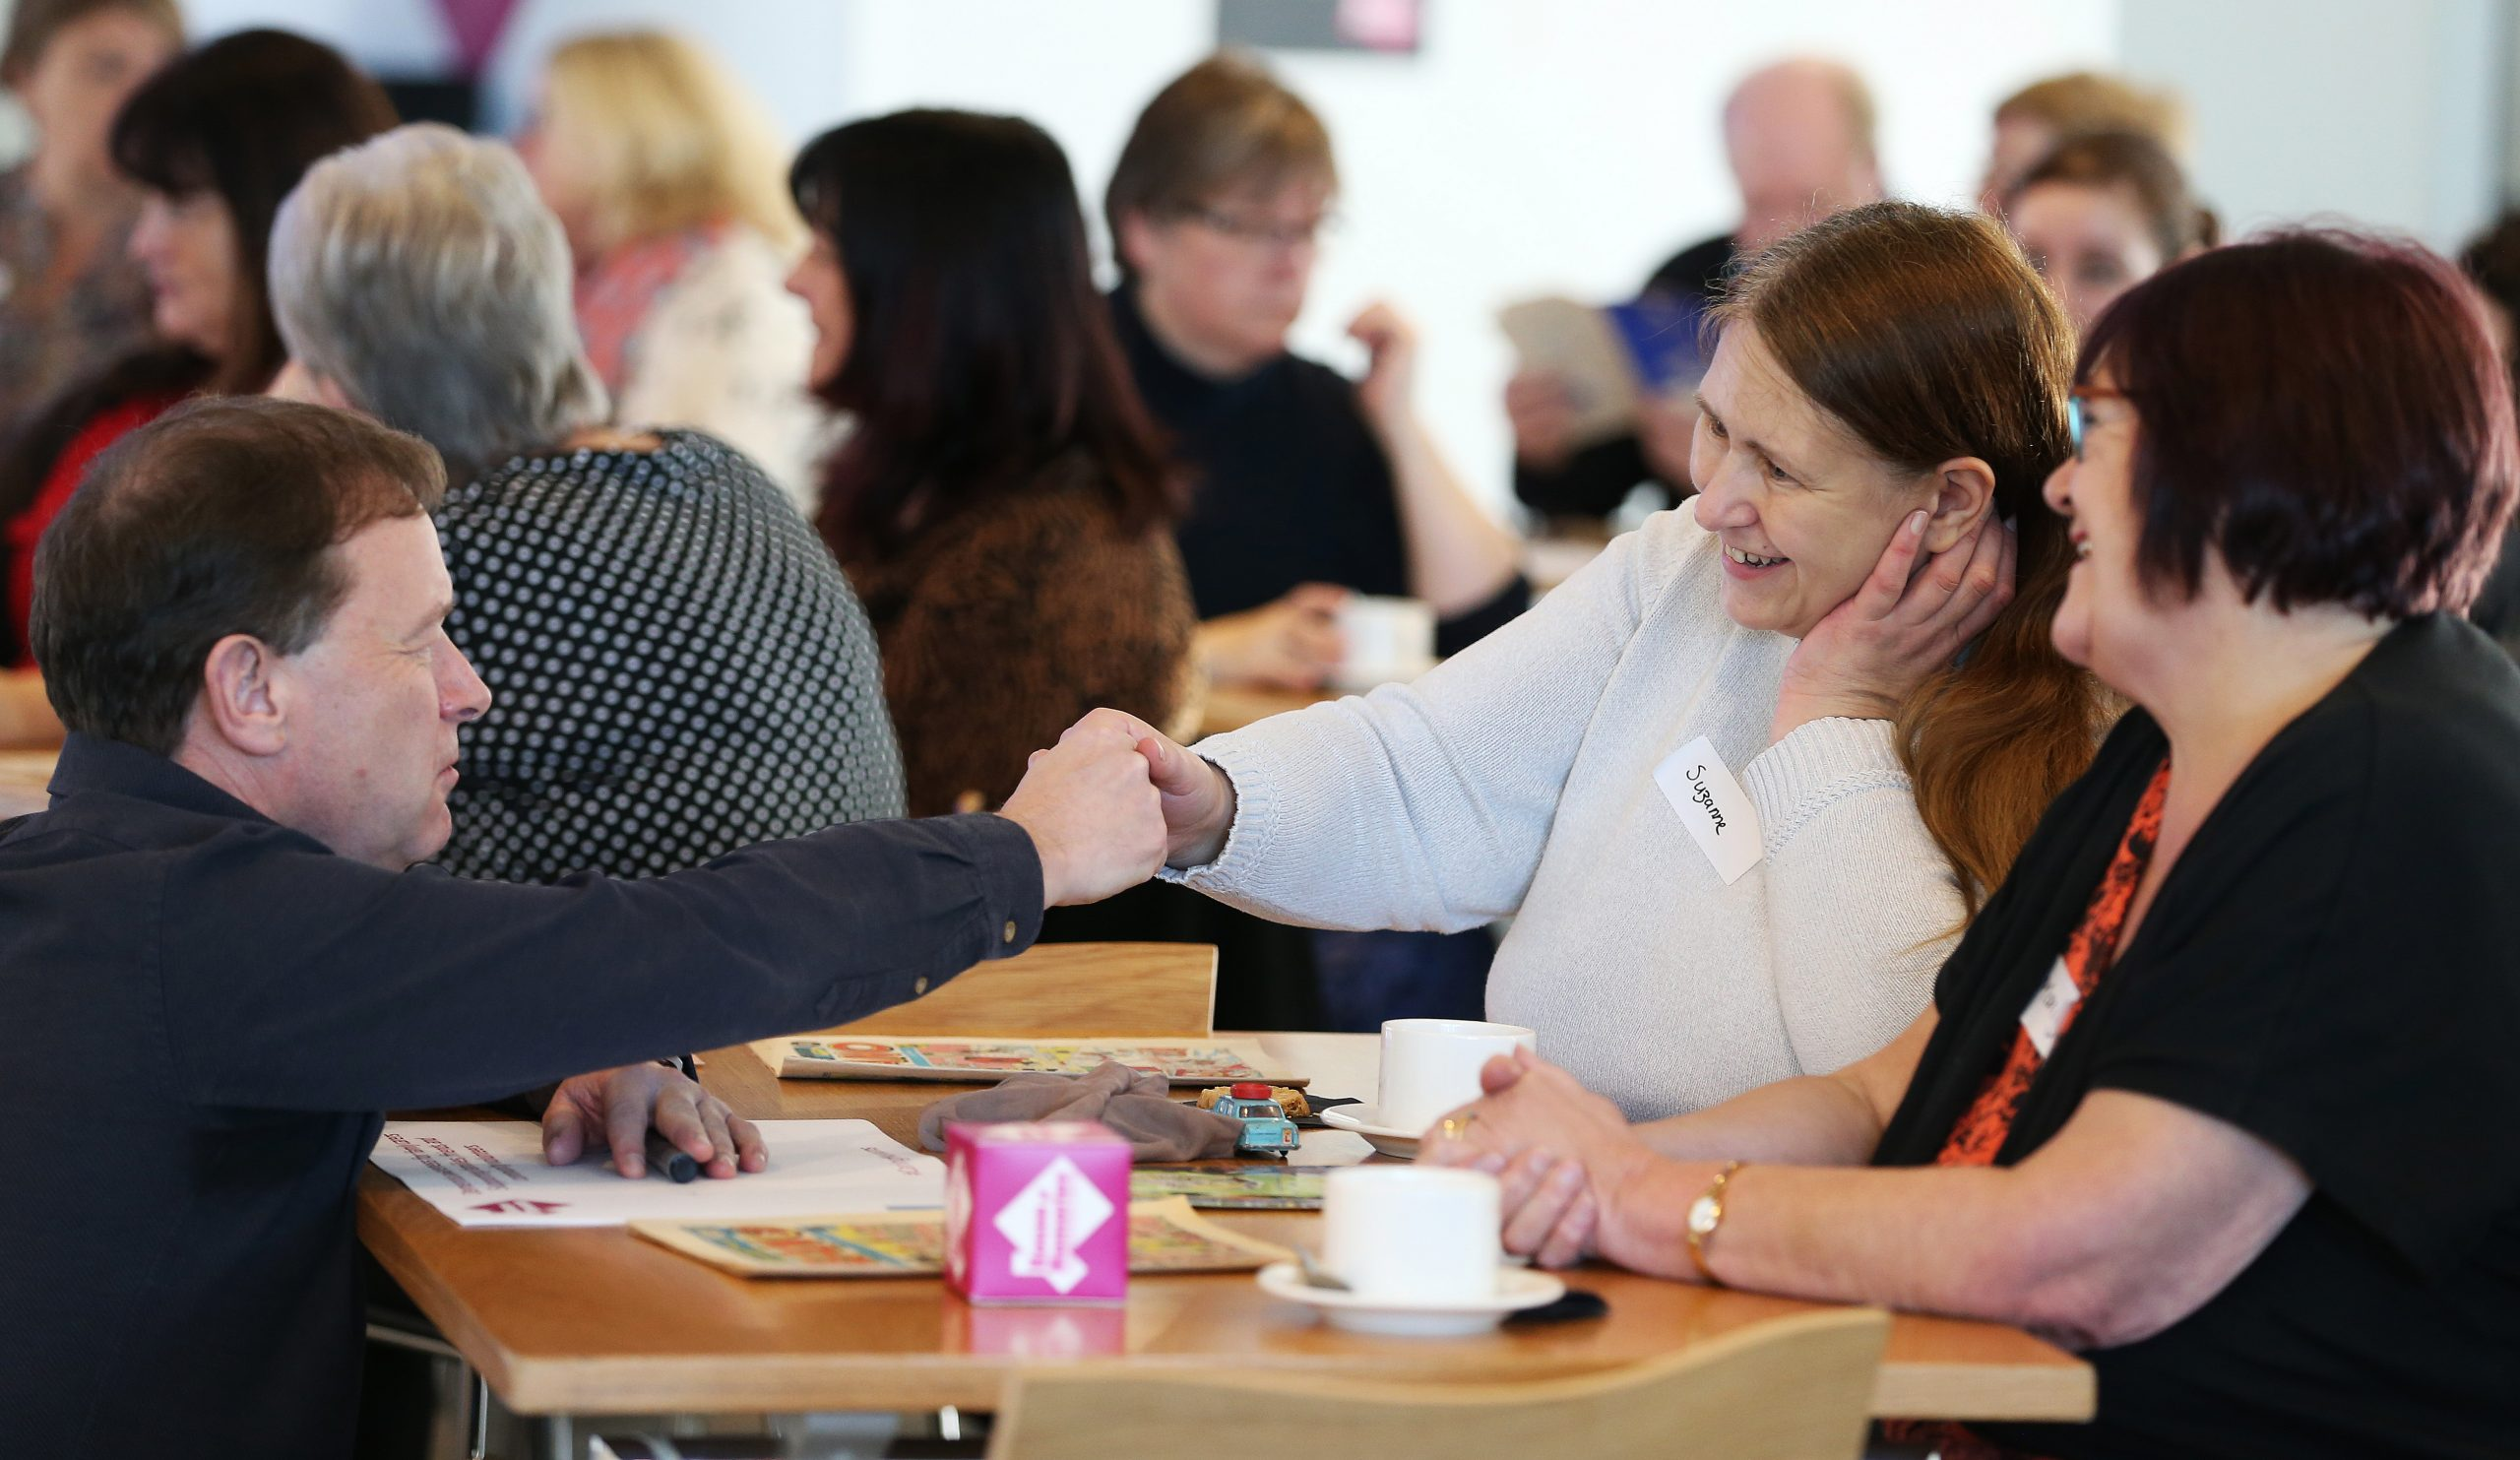 National Museums Liverpool runs House of Memories dementia awareness for family carers